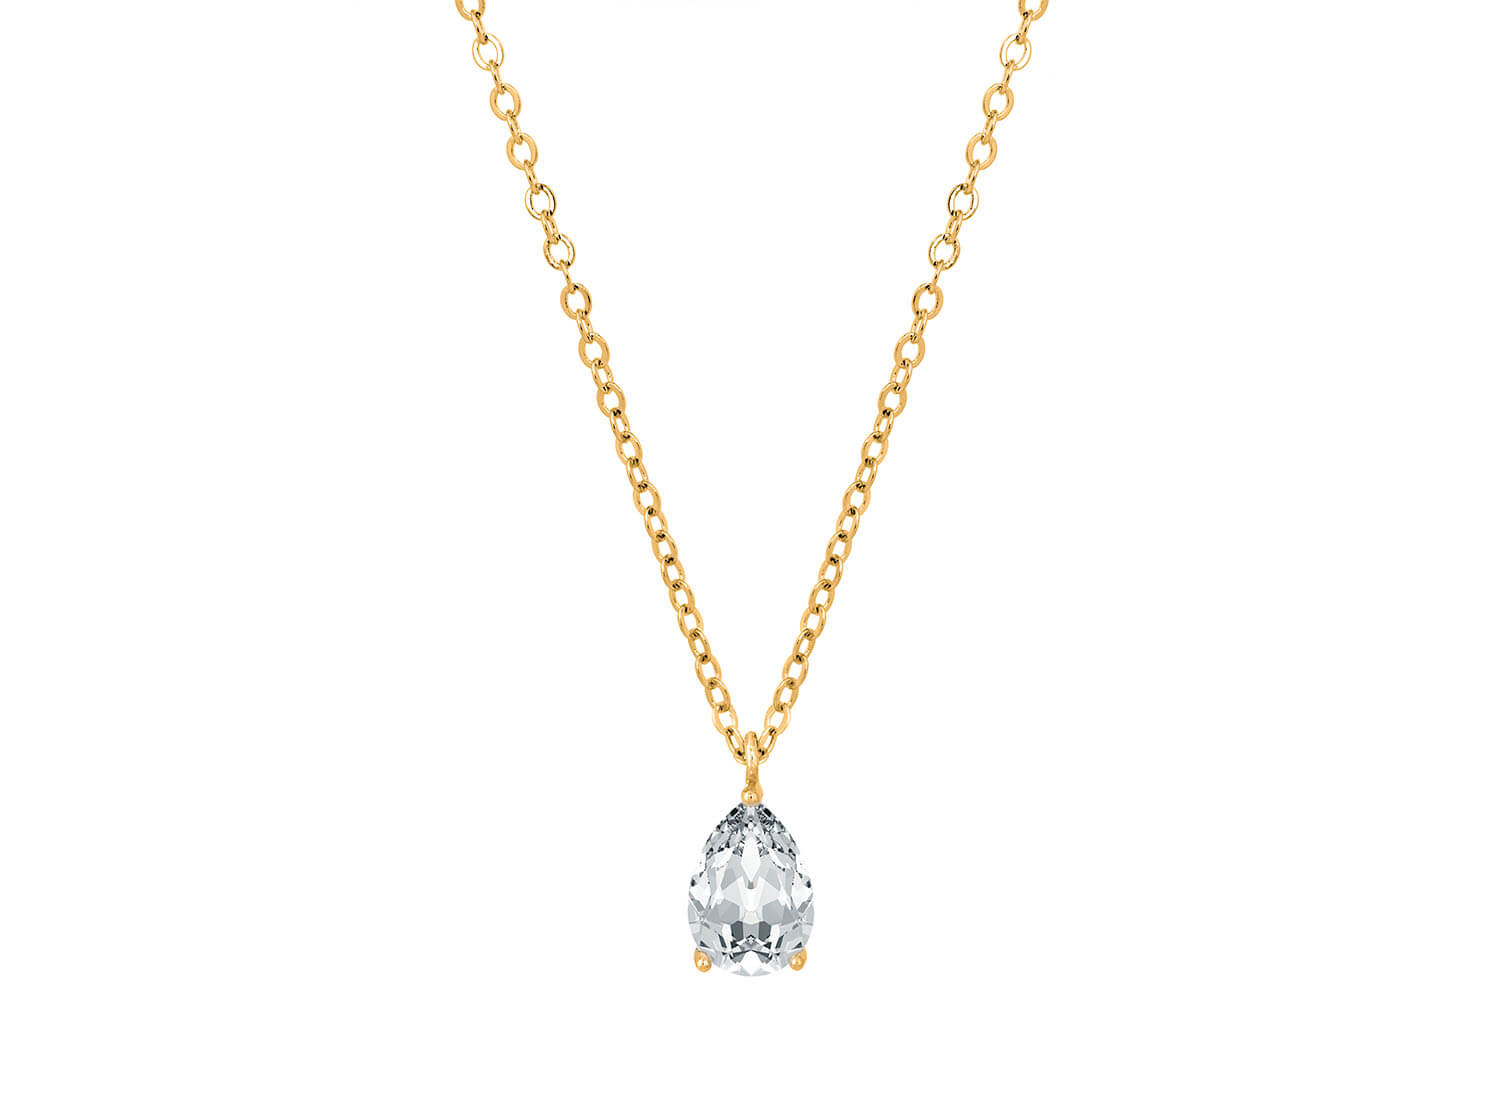 Daily Luxury Necklace V Gold